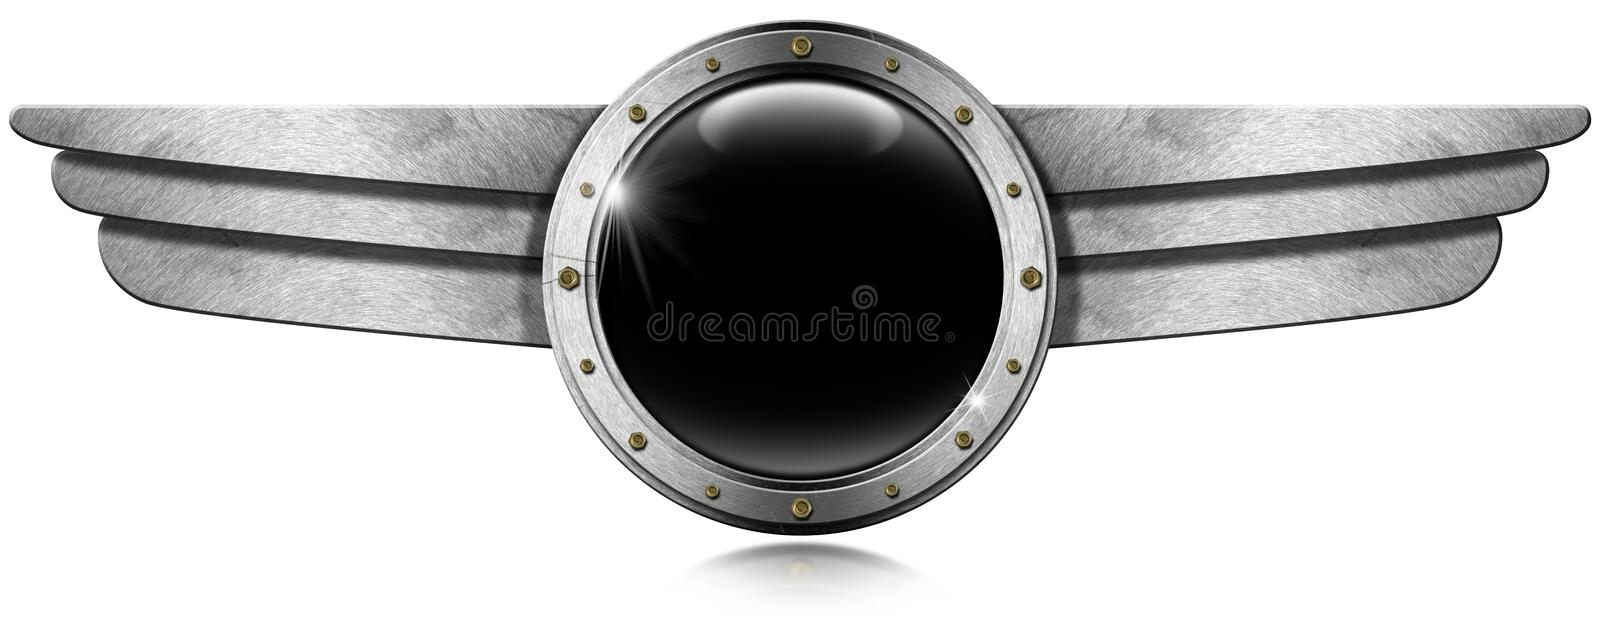 Metallic Porthole with Metal Wings vector illustration